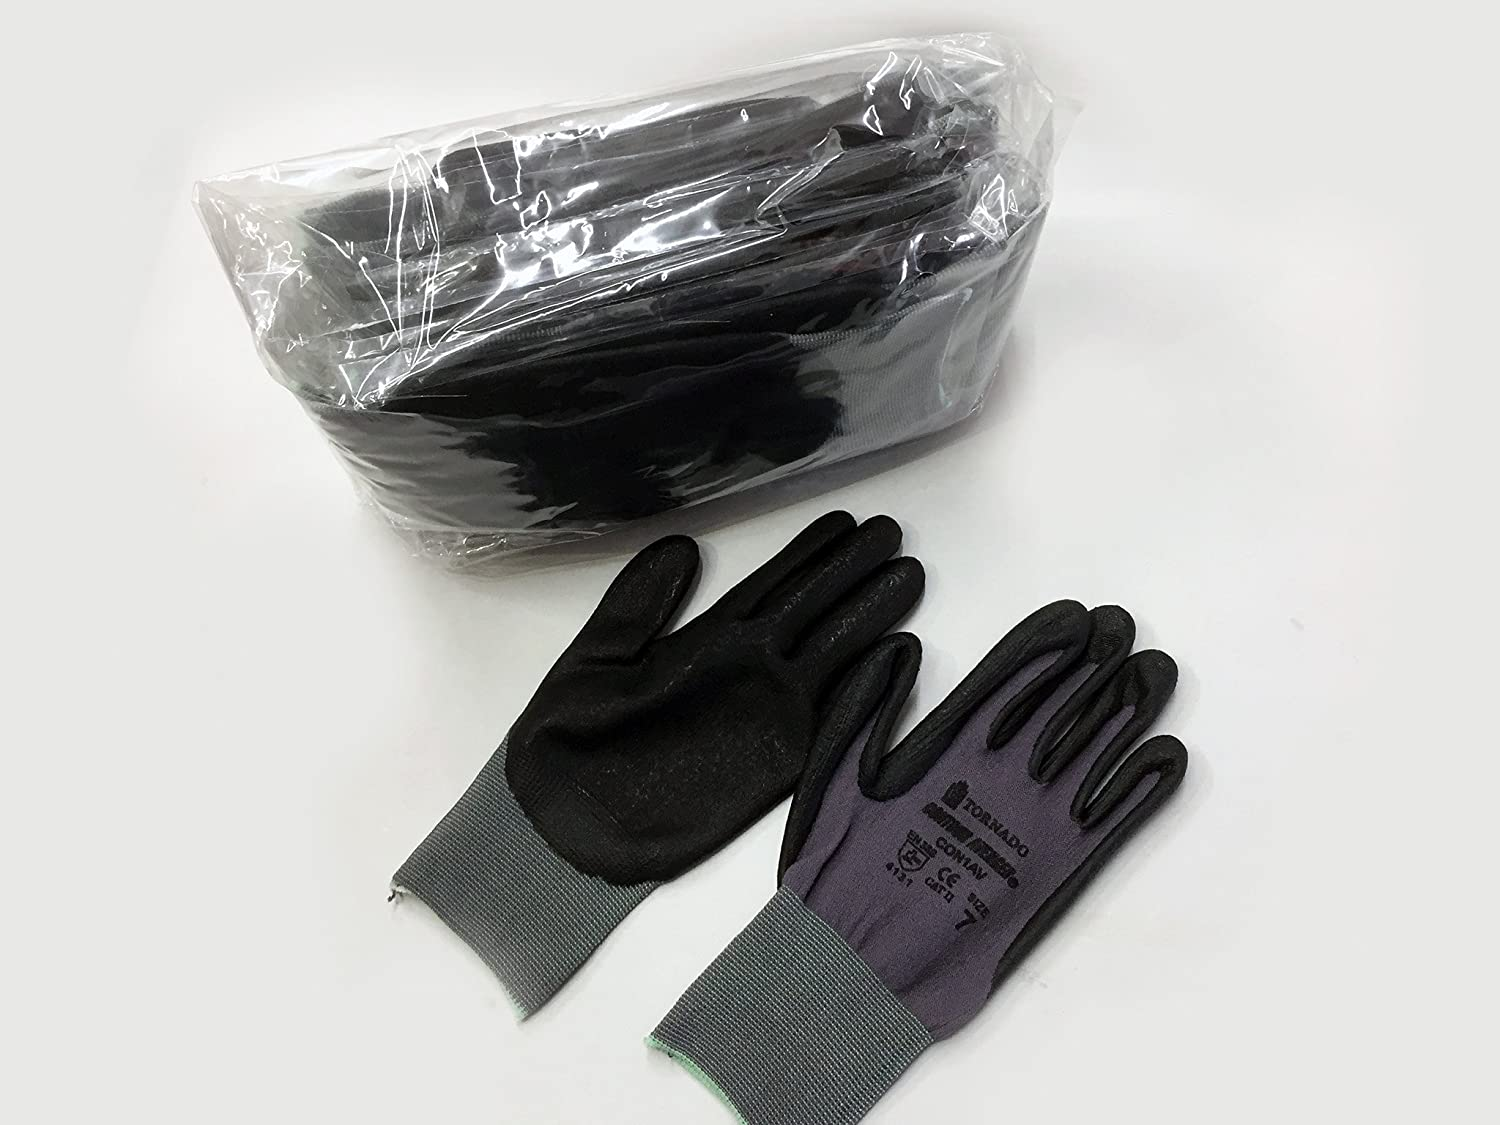 10 x PAIRS TORNADO CONTOUR AVENGER INDUSTRIAL GLOVES SIZES 6, 7 & 9 LIGHTWEIGHT (Medium)